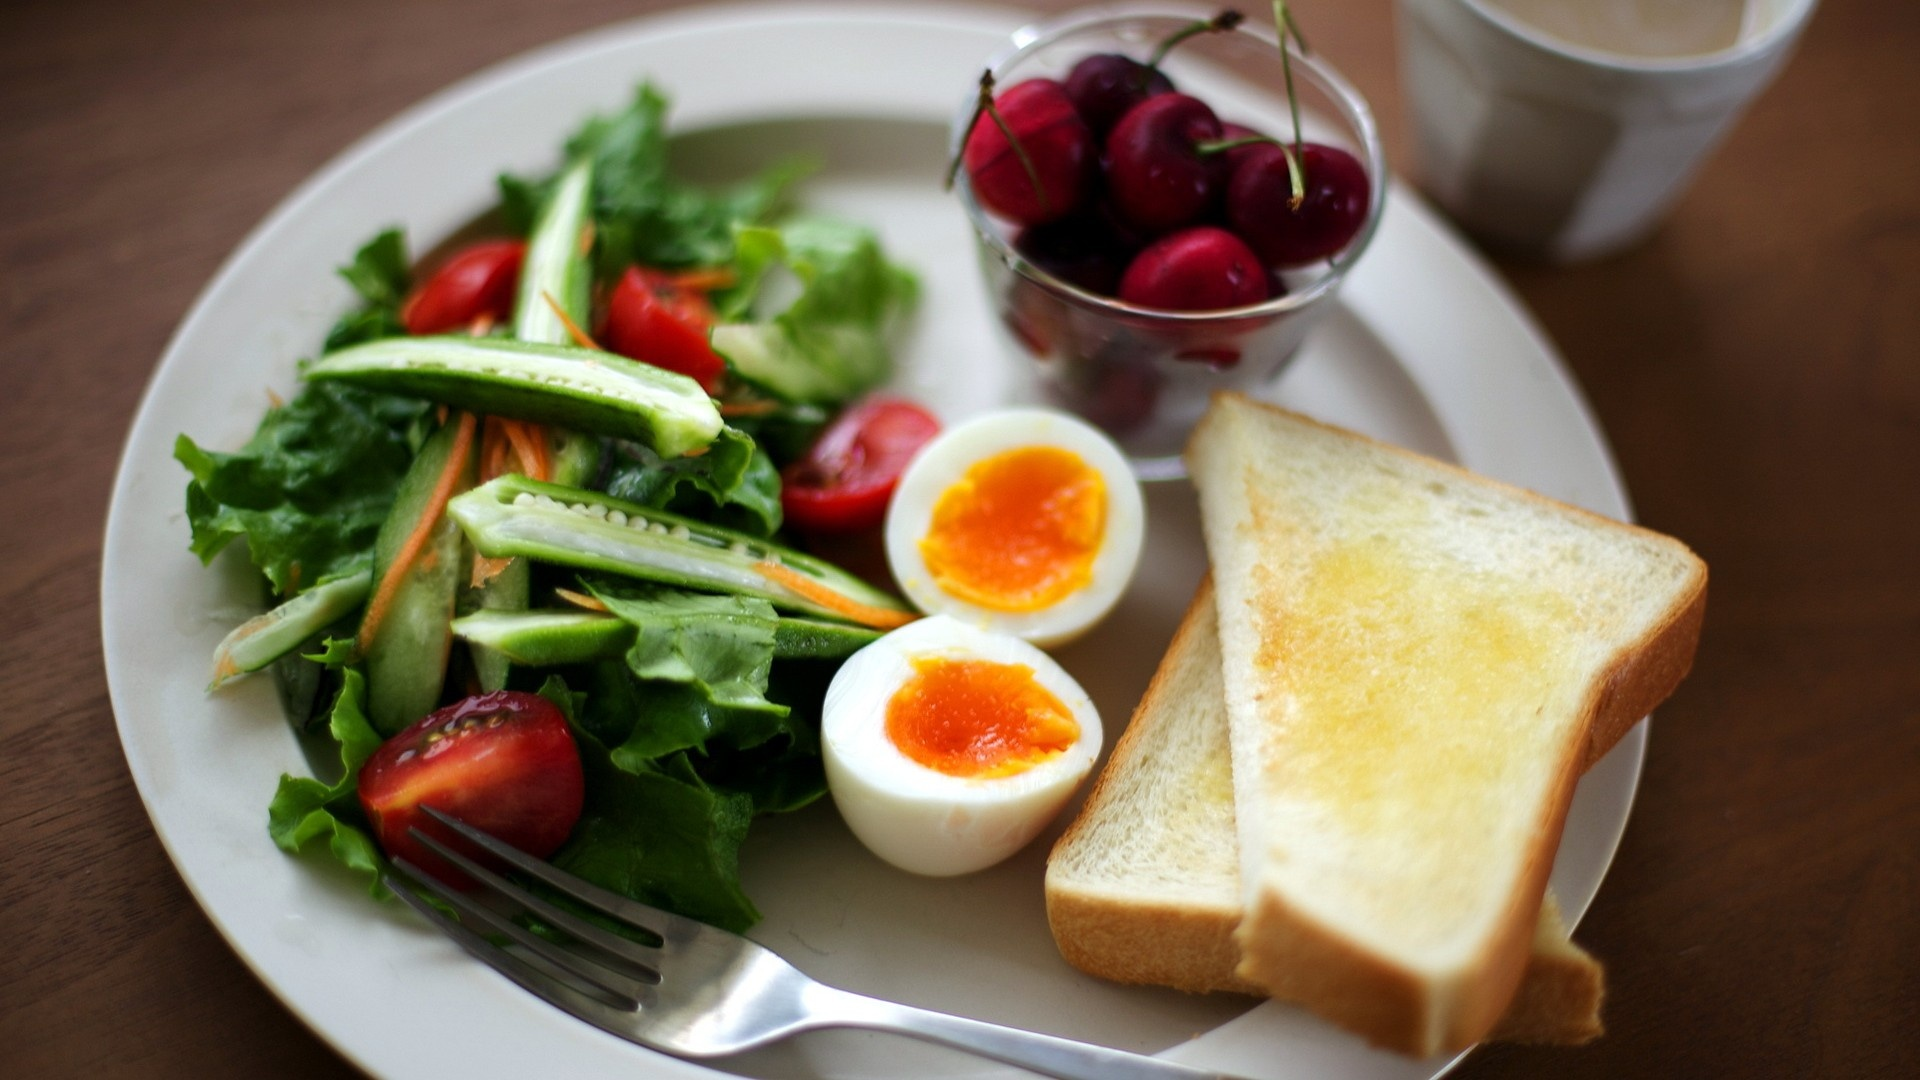 Awesome Breakfast Good Morning Wallpaper Free Download: Salad Breakfast Healthy Hd Wallpaper 1920x1080px